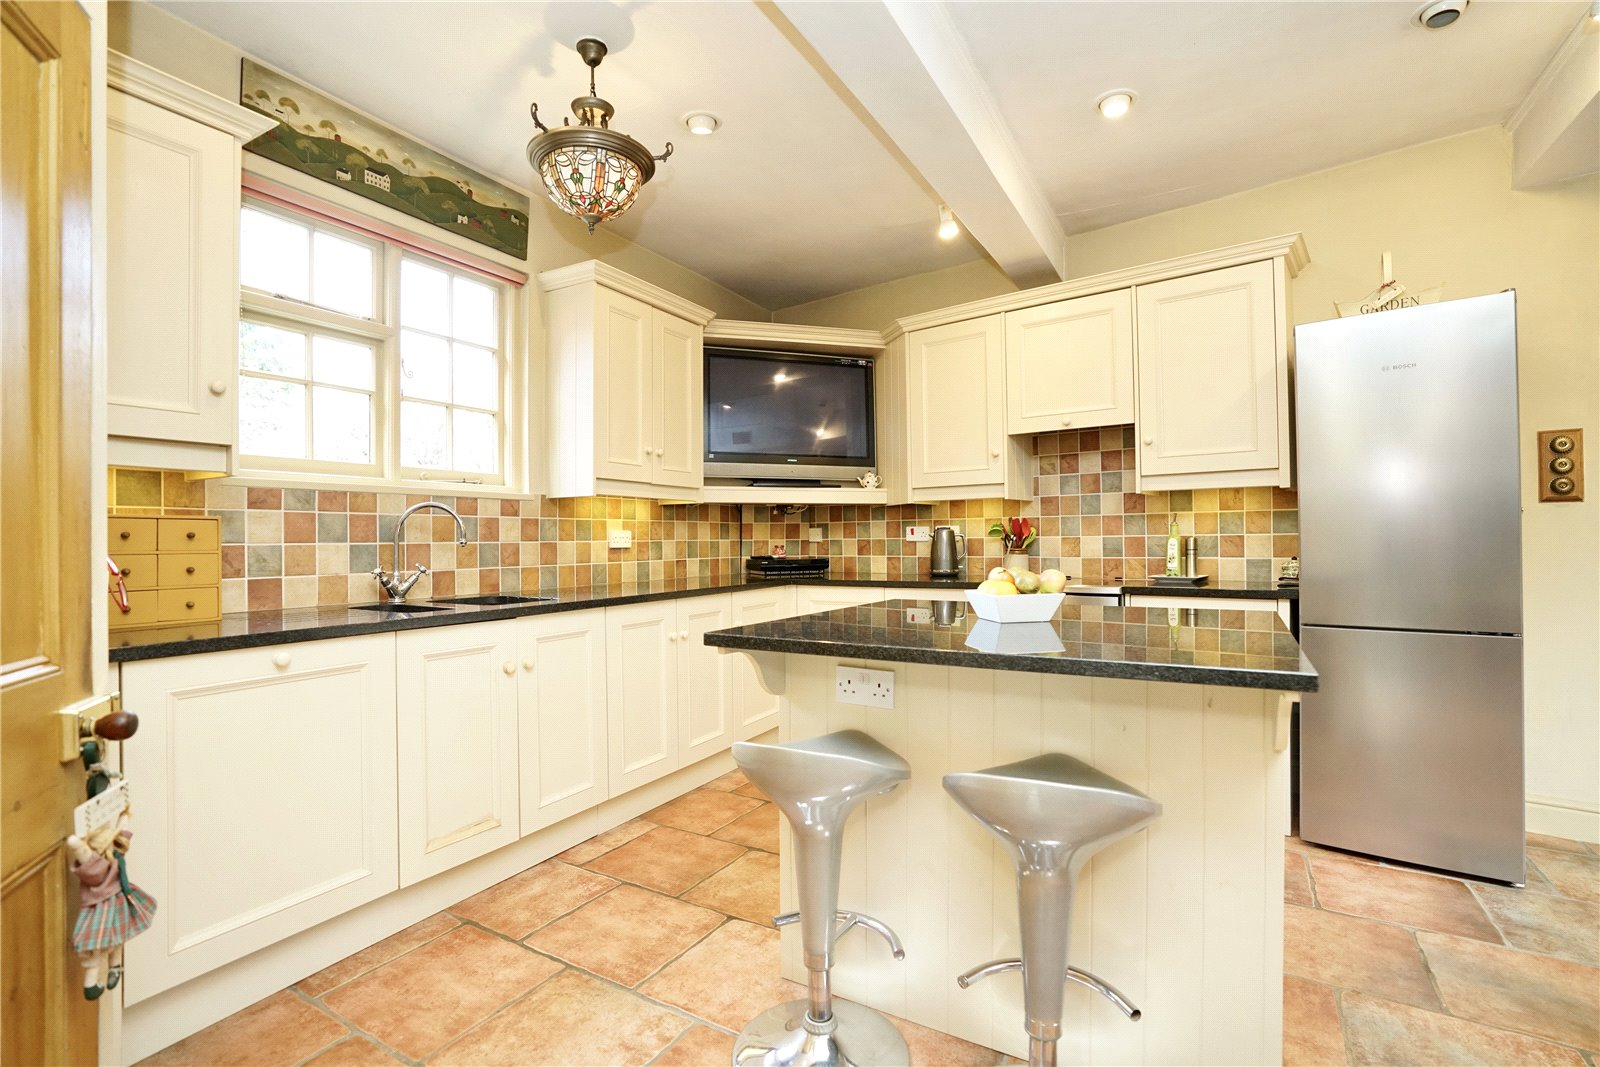 4 bed house for sale in Great Staughton  - Property Image 5